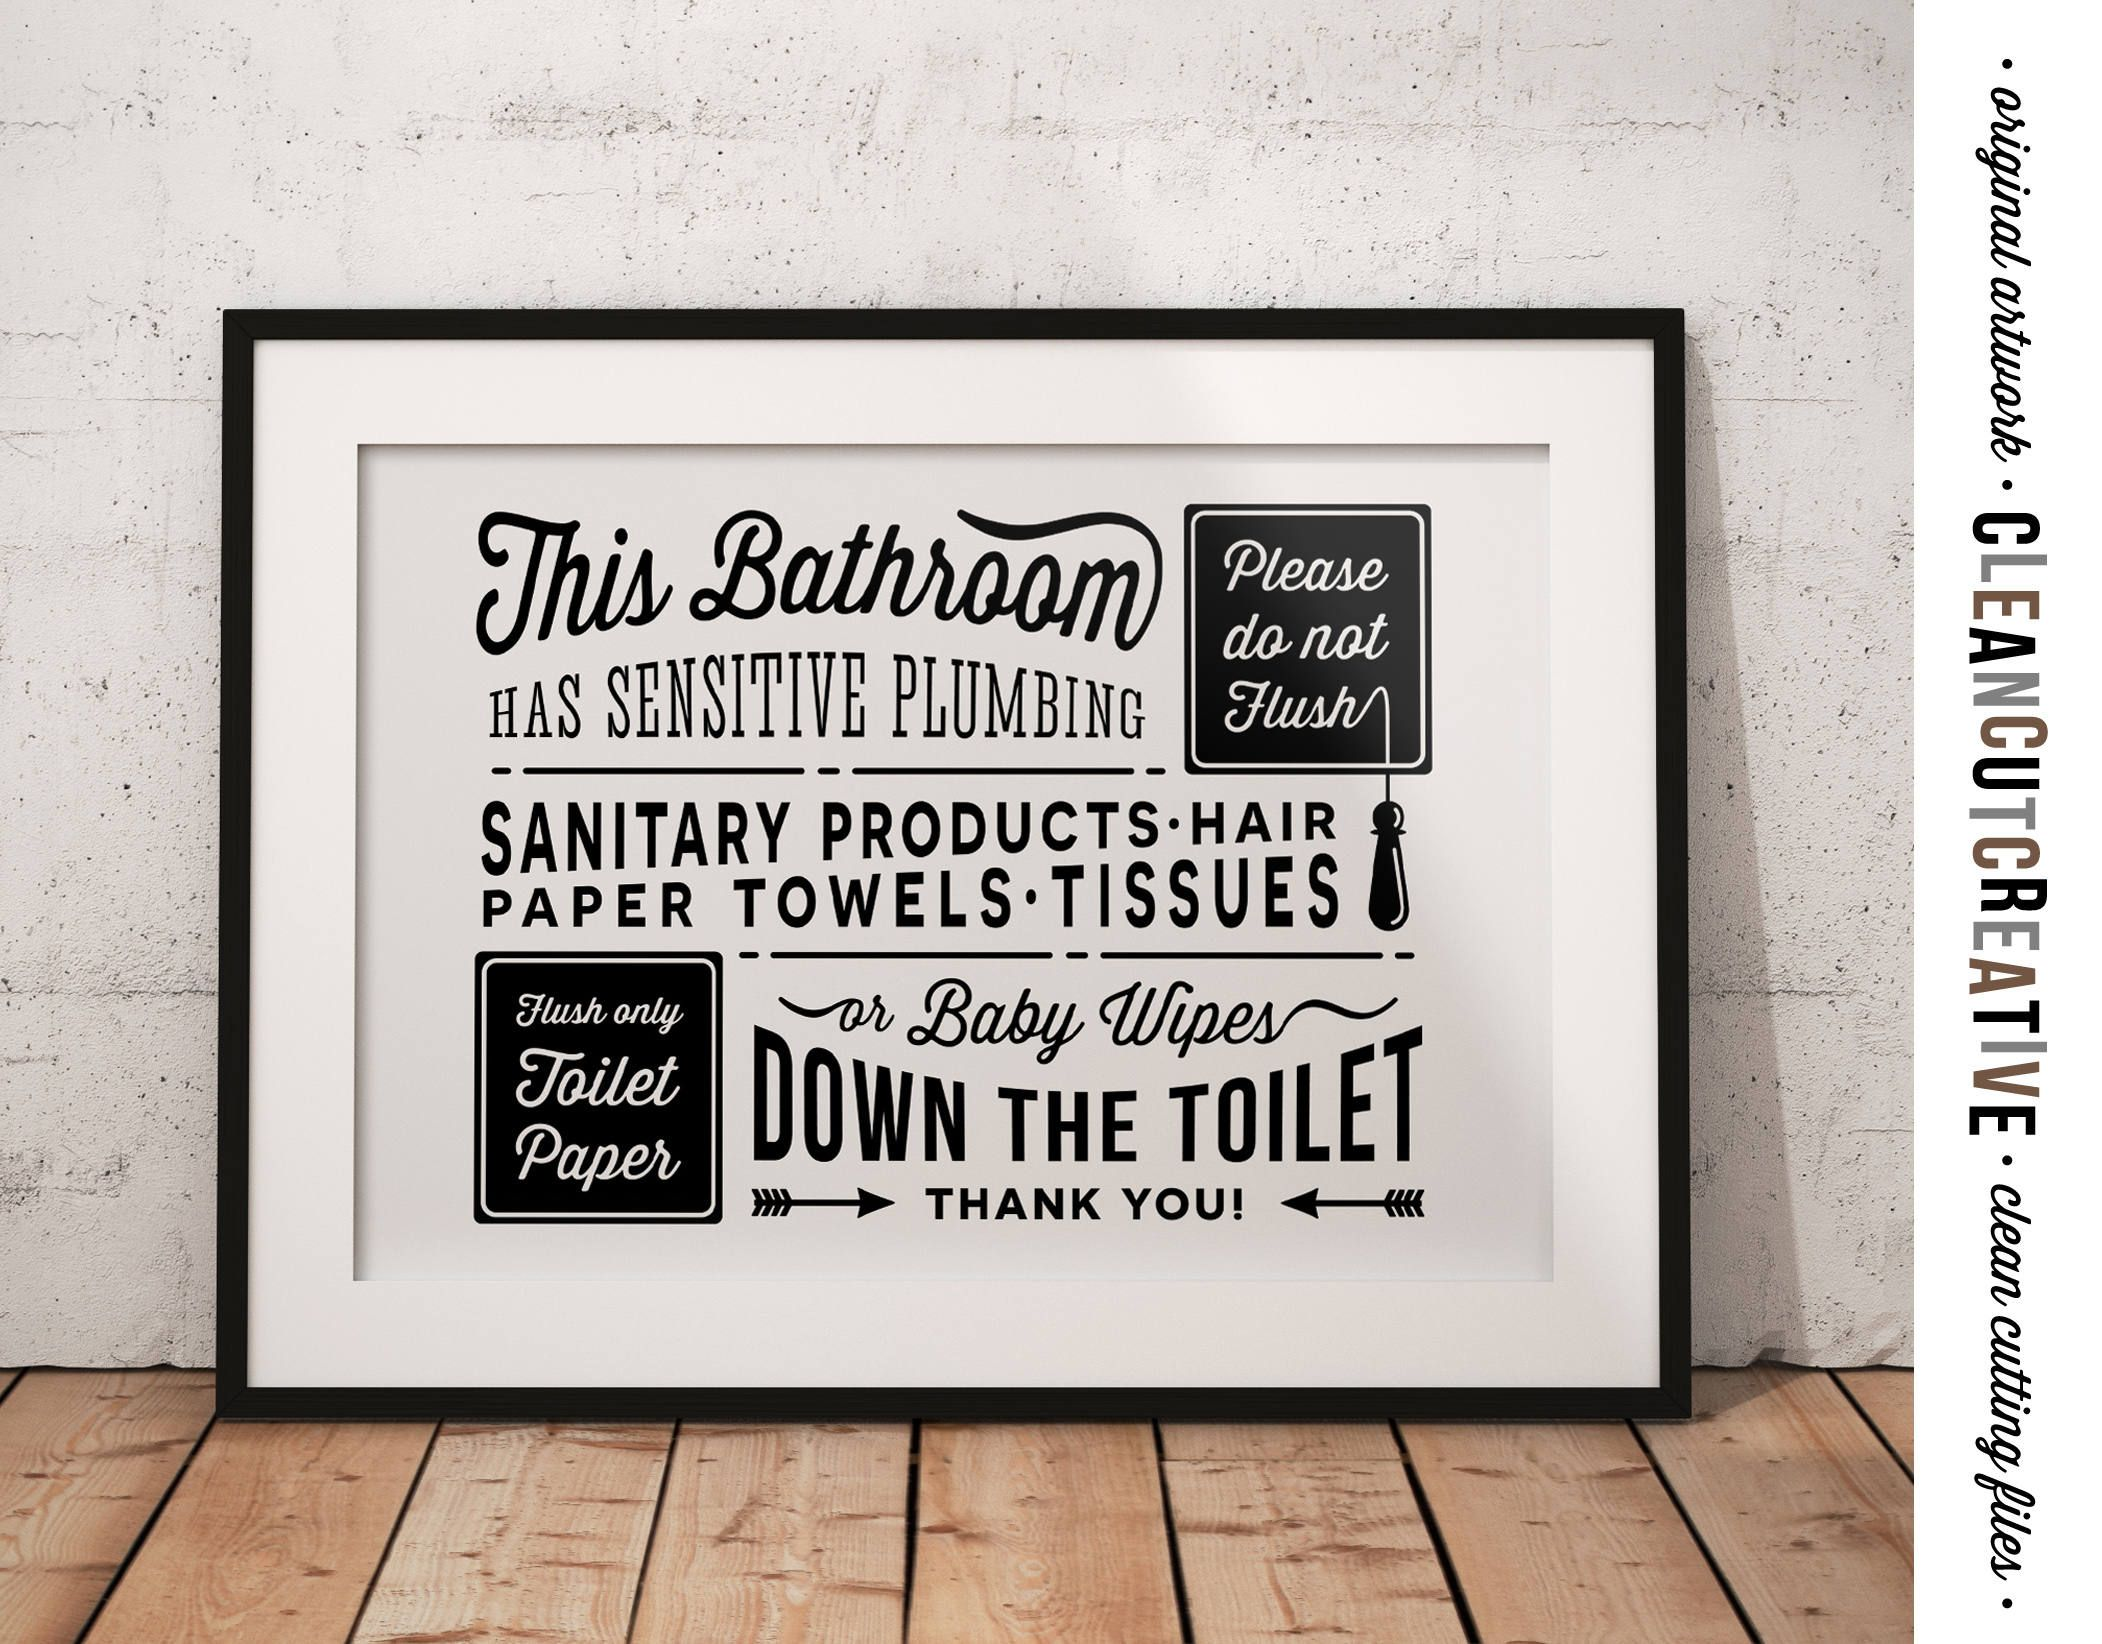 Septic signs for bathroom